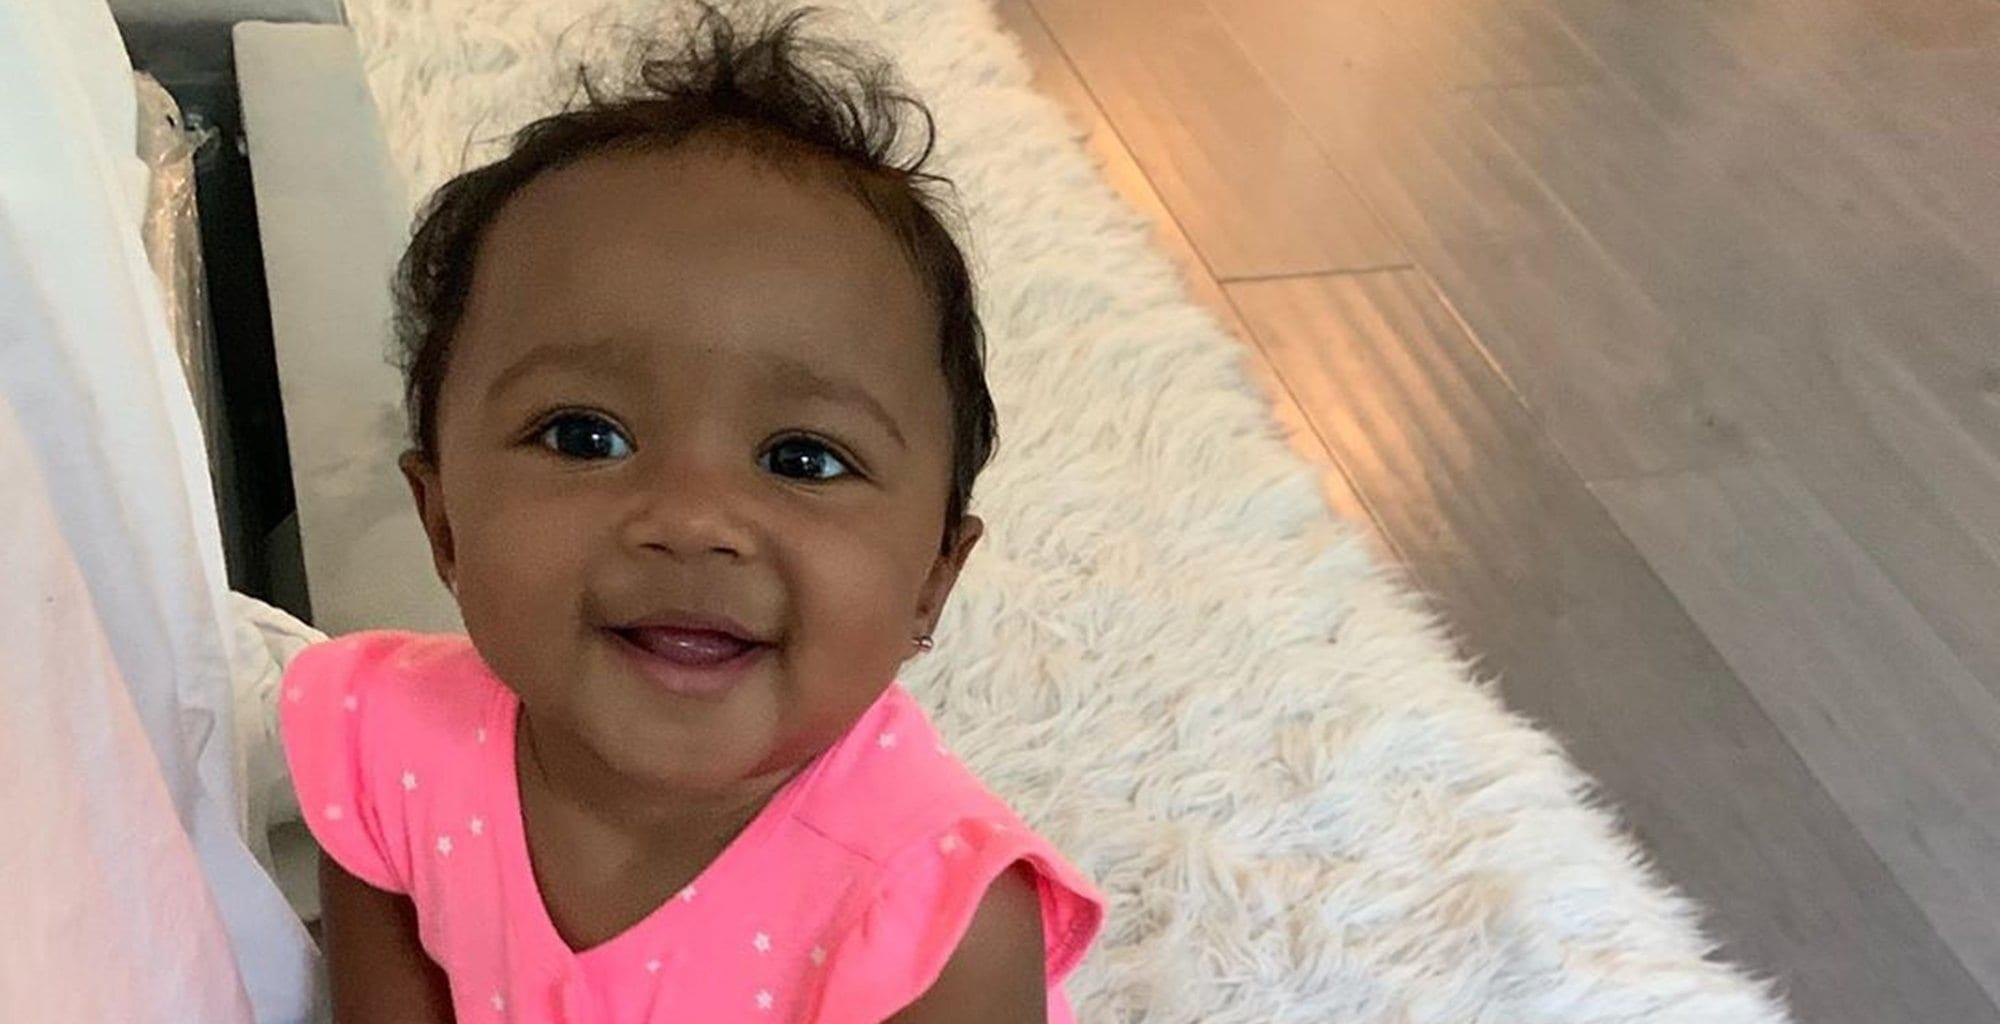 Kenya Moore Melts Fans' Hearts With This Photo Featuring Baby Brooklyn Daly